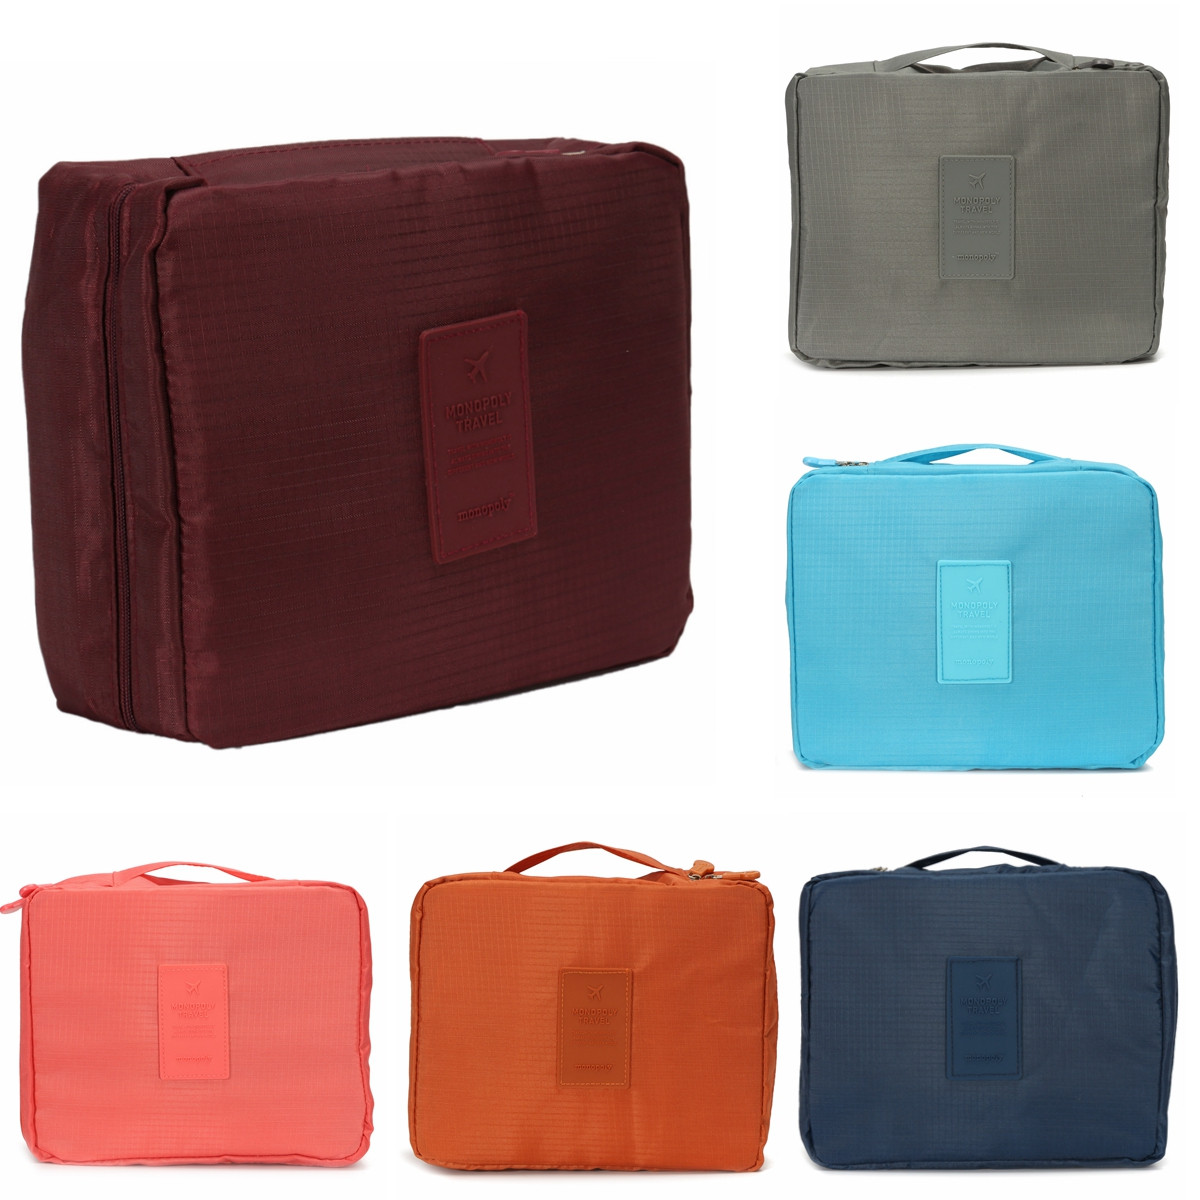 ... Cosmetic Makeup Bag Toiletry Case Wash Organizer Storage Hanging Pouch